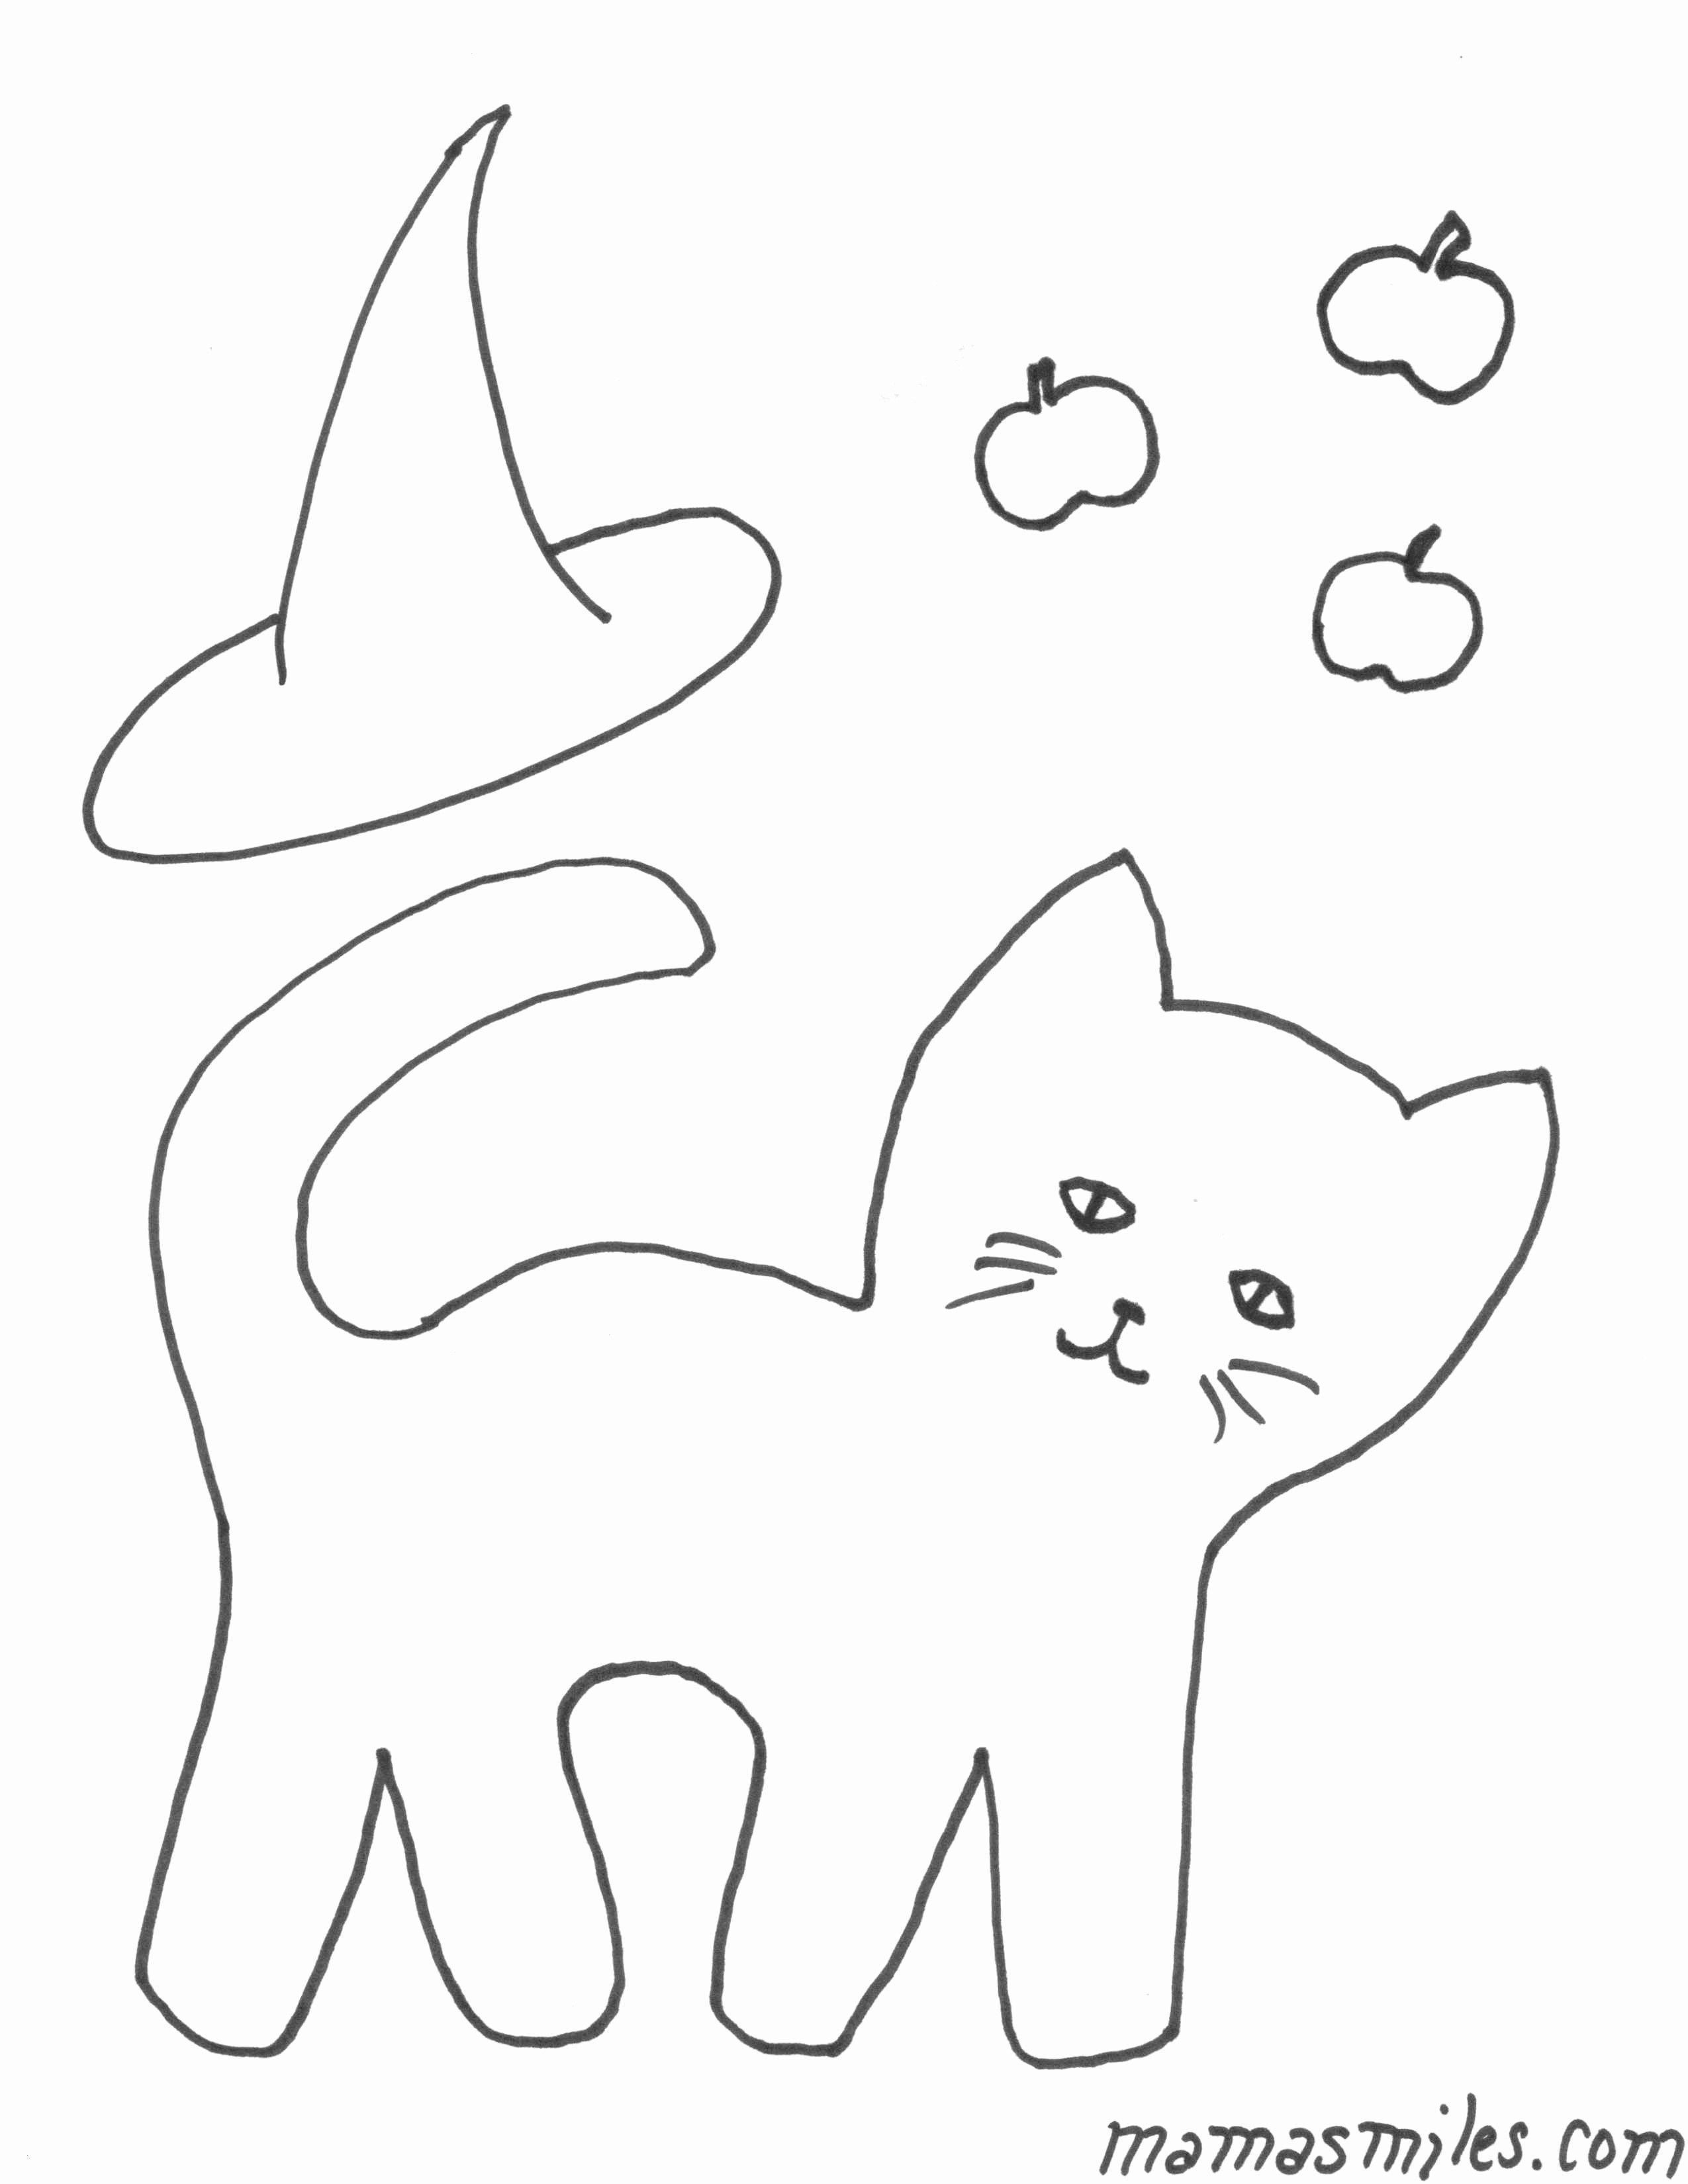 Cat Coloring Pages For Adults Best Of Inspirational Dog And Cat Coloring Pages Free Halloween Coloring Pages Animal Coloring Pages Halloween Coloring